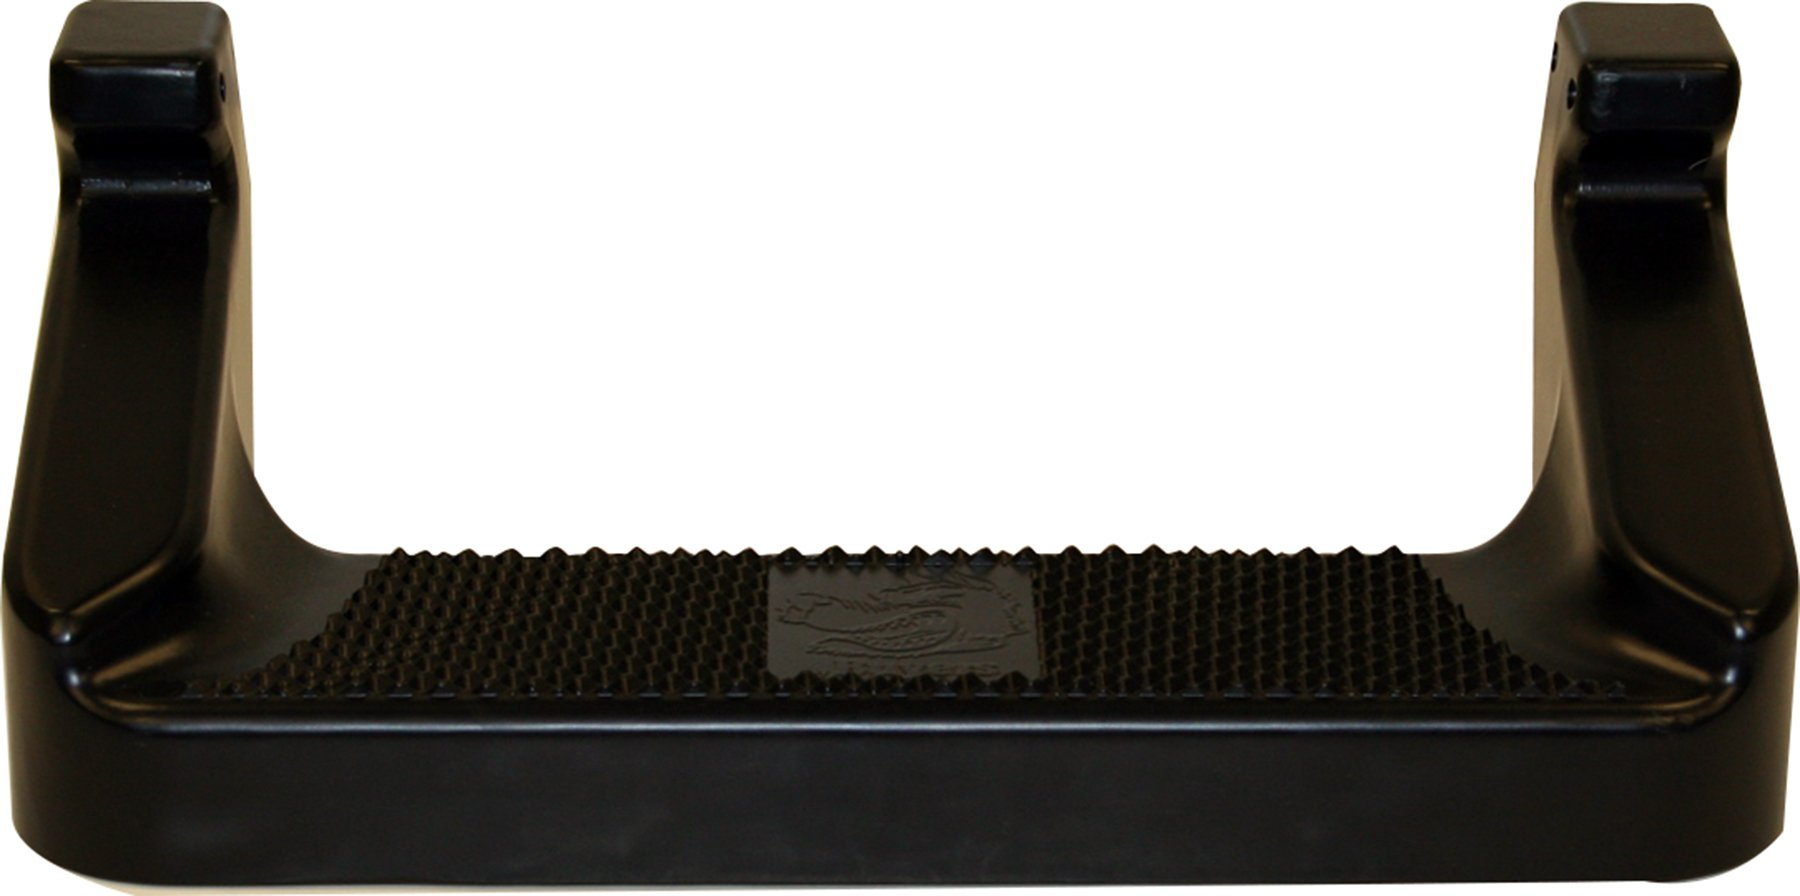 Buyers Products 5231021 Black Die Cast Aluminum Pickup Truck Step, 1 Pack